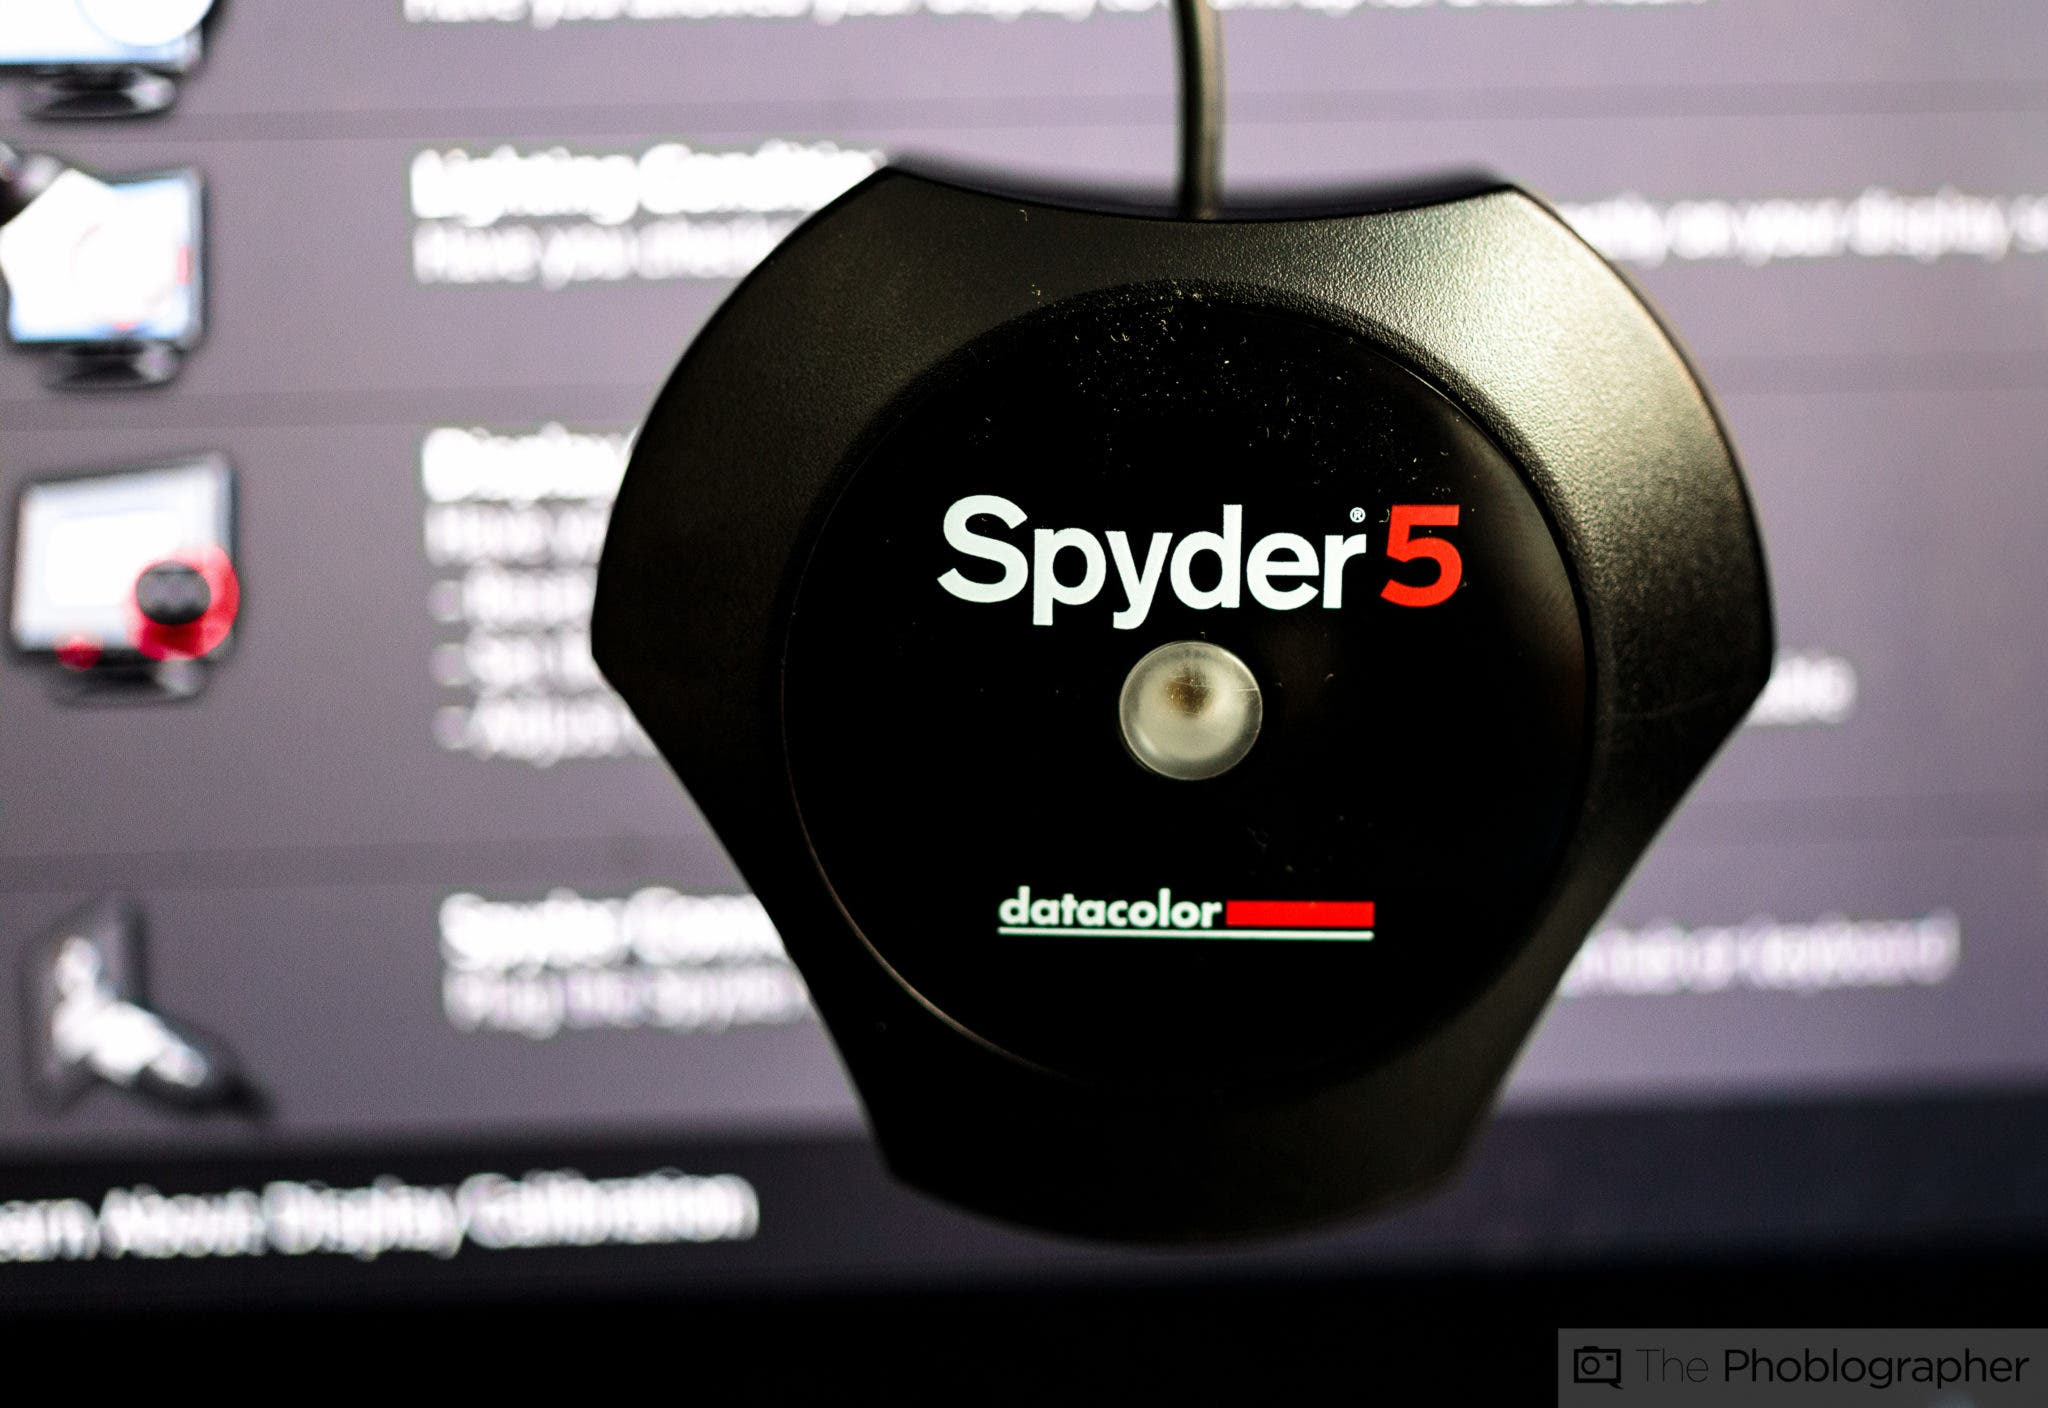 Datacolor Updates Their Spyder5 Software to Support 64-Bit Applications